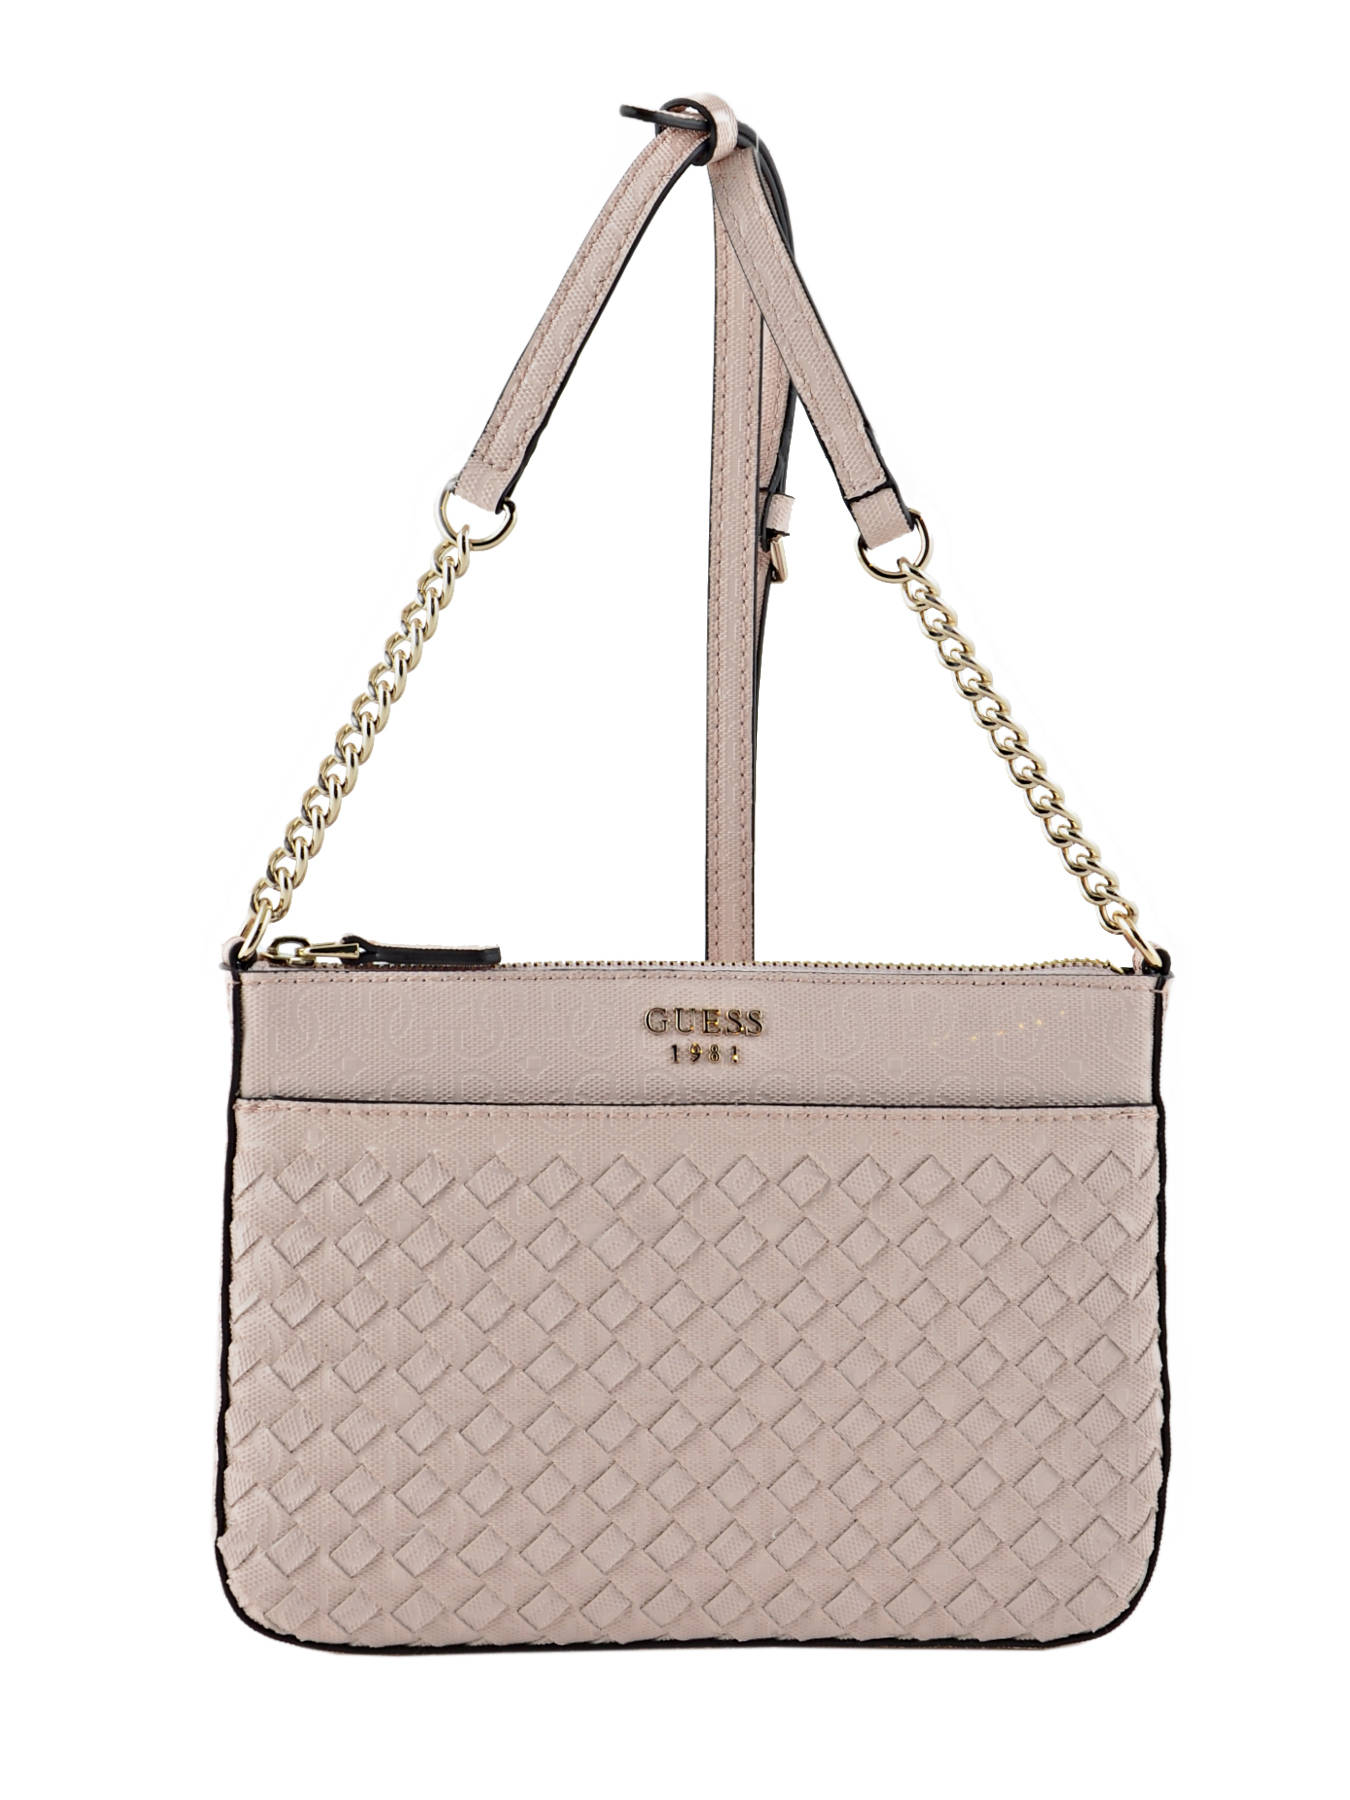 Guess Bag Flutter - Best prices